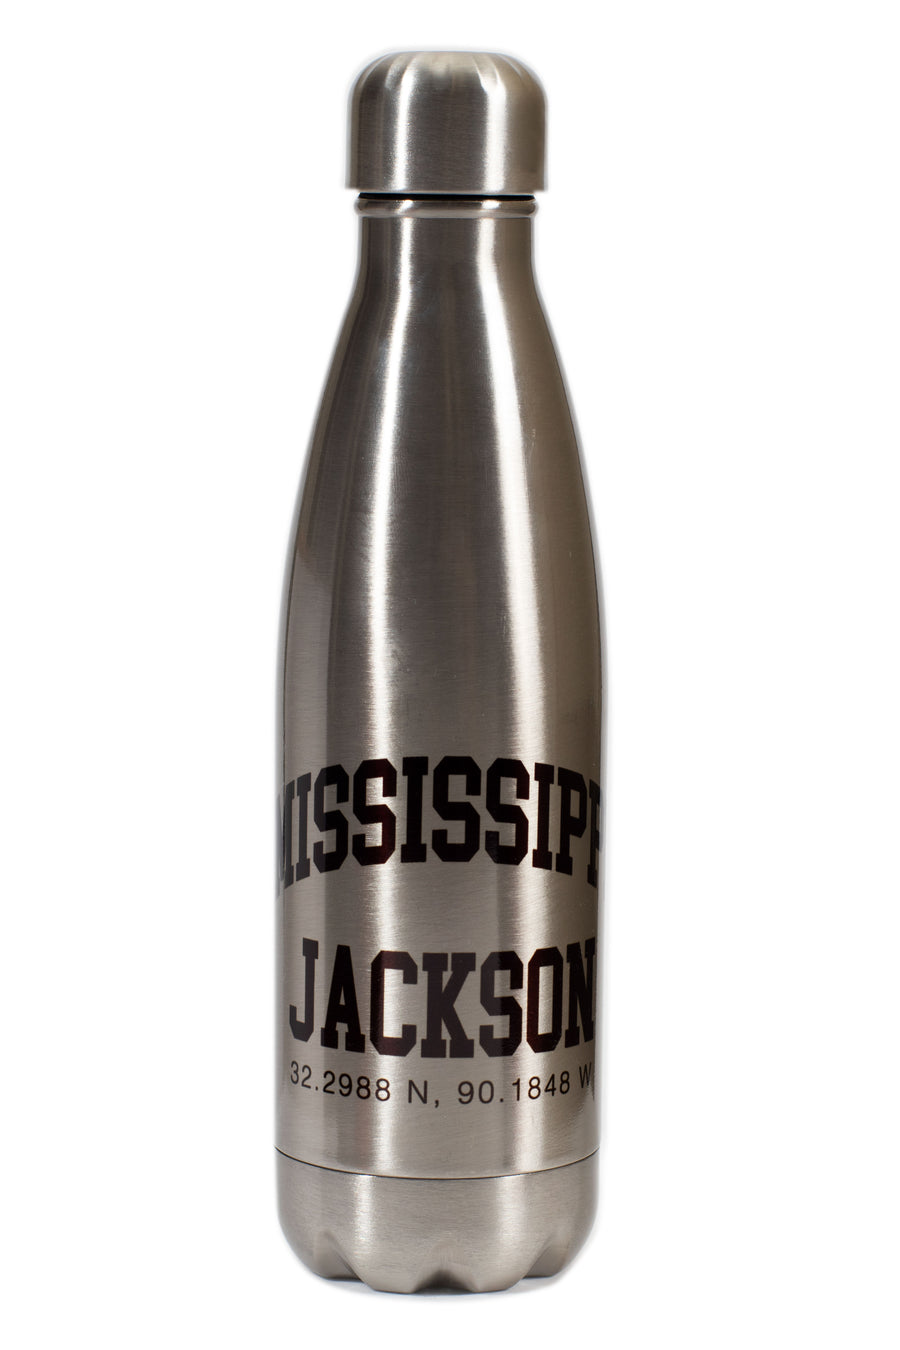 30.2988 N, 90.1848 W - JACKSON COORDINATES Water Bottle